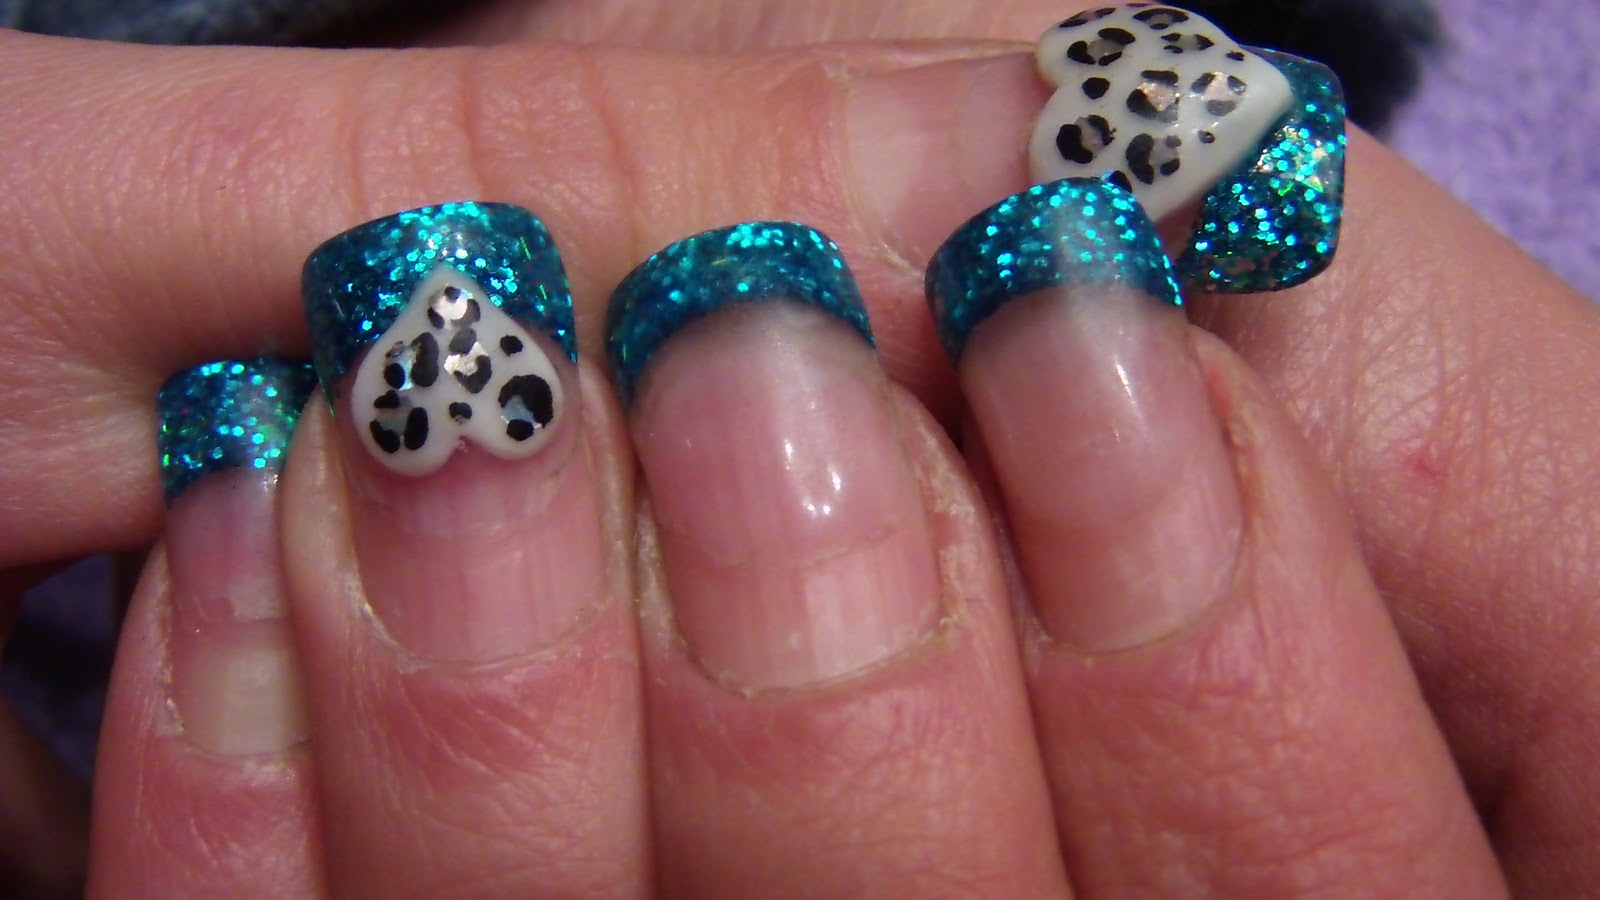 underthelilyshadow: When do your nails need an infill?